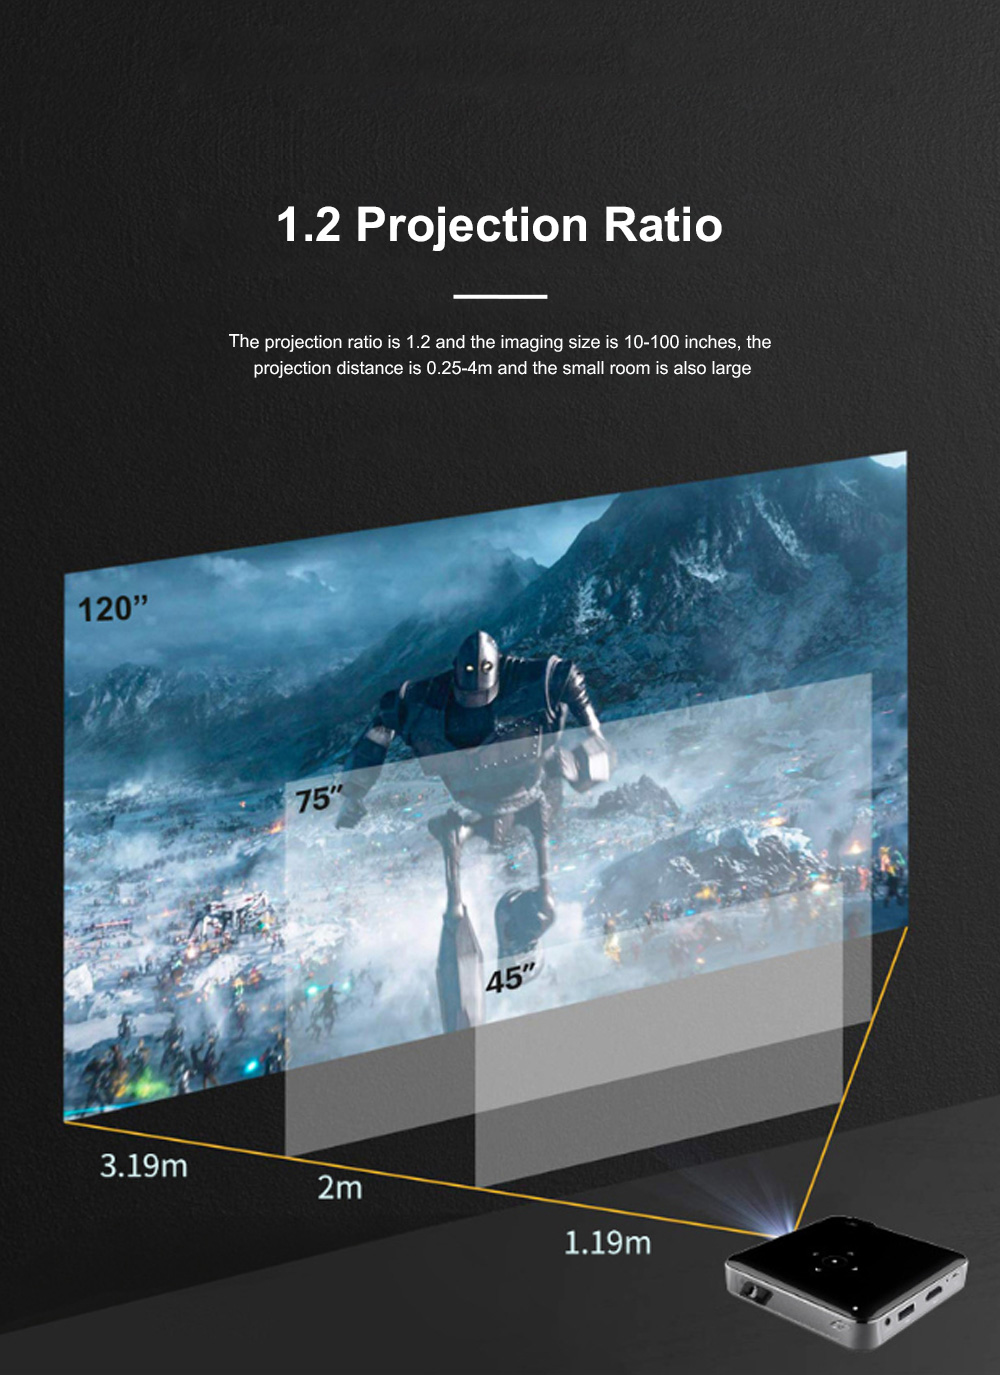 S80 Android Smart Projector HD 1080P 854x480 Wireless Miracast Airplay Wifi Display Smartphone Mini Pocket Projector 4